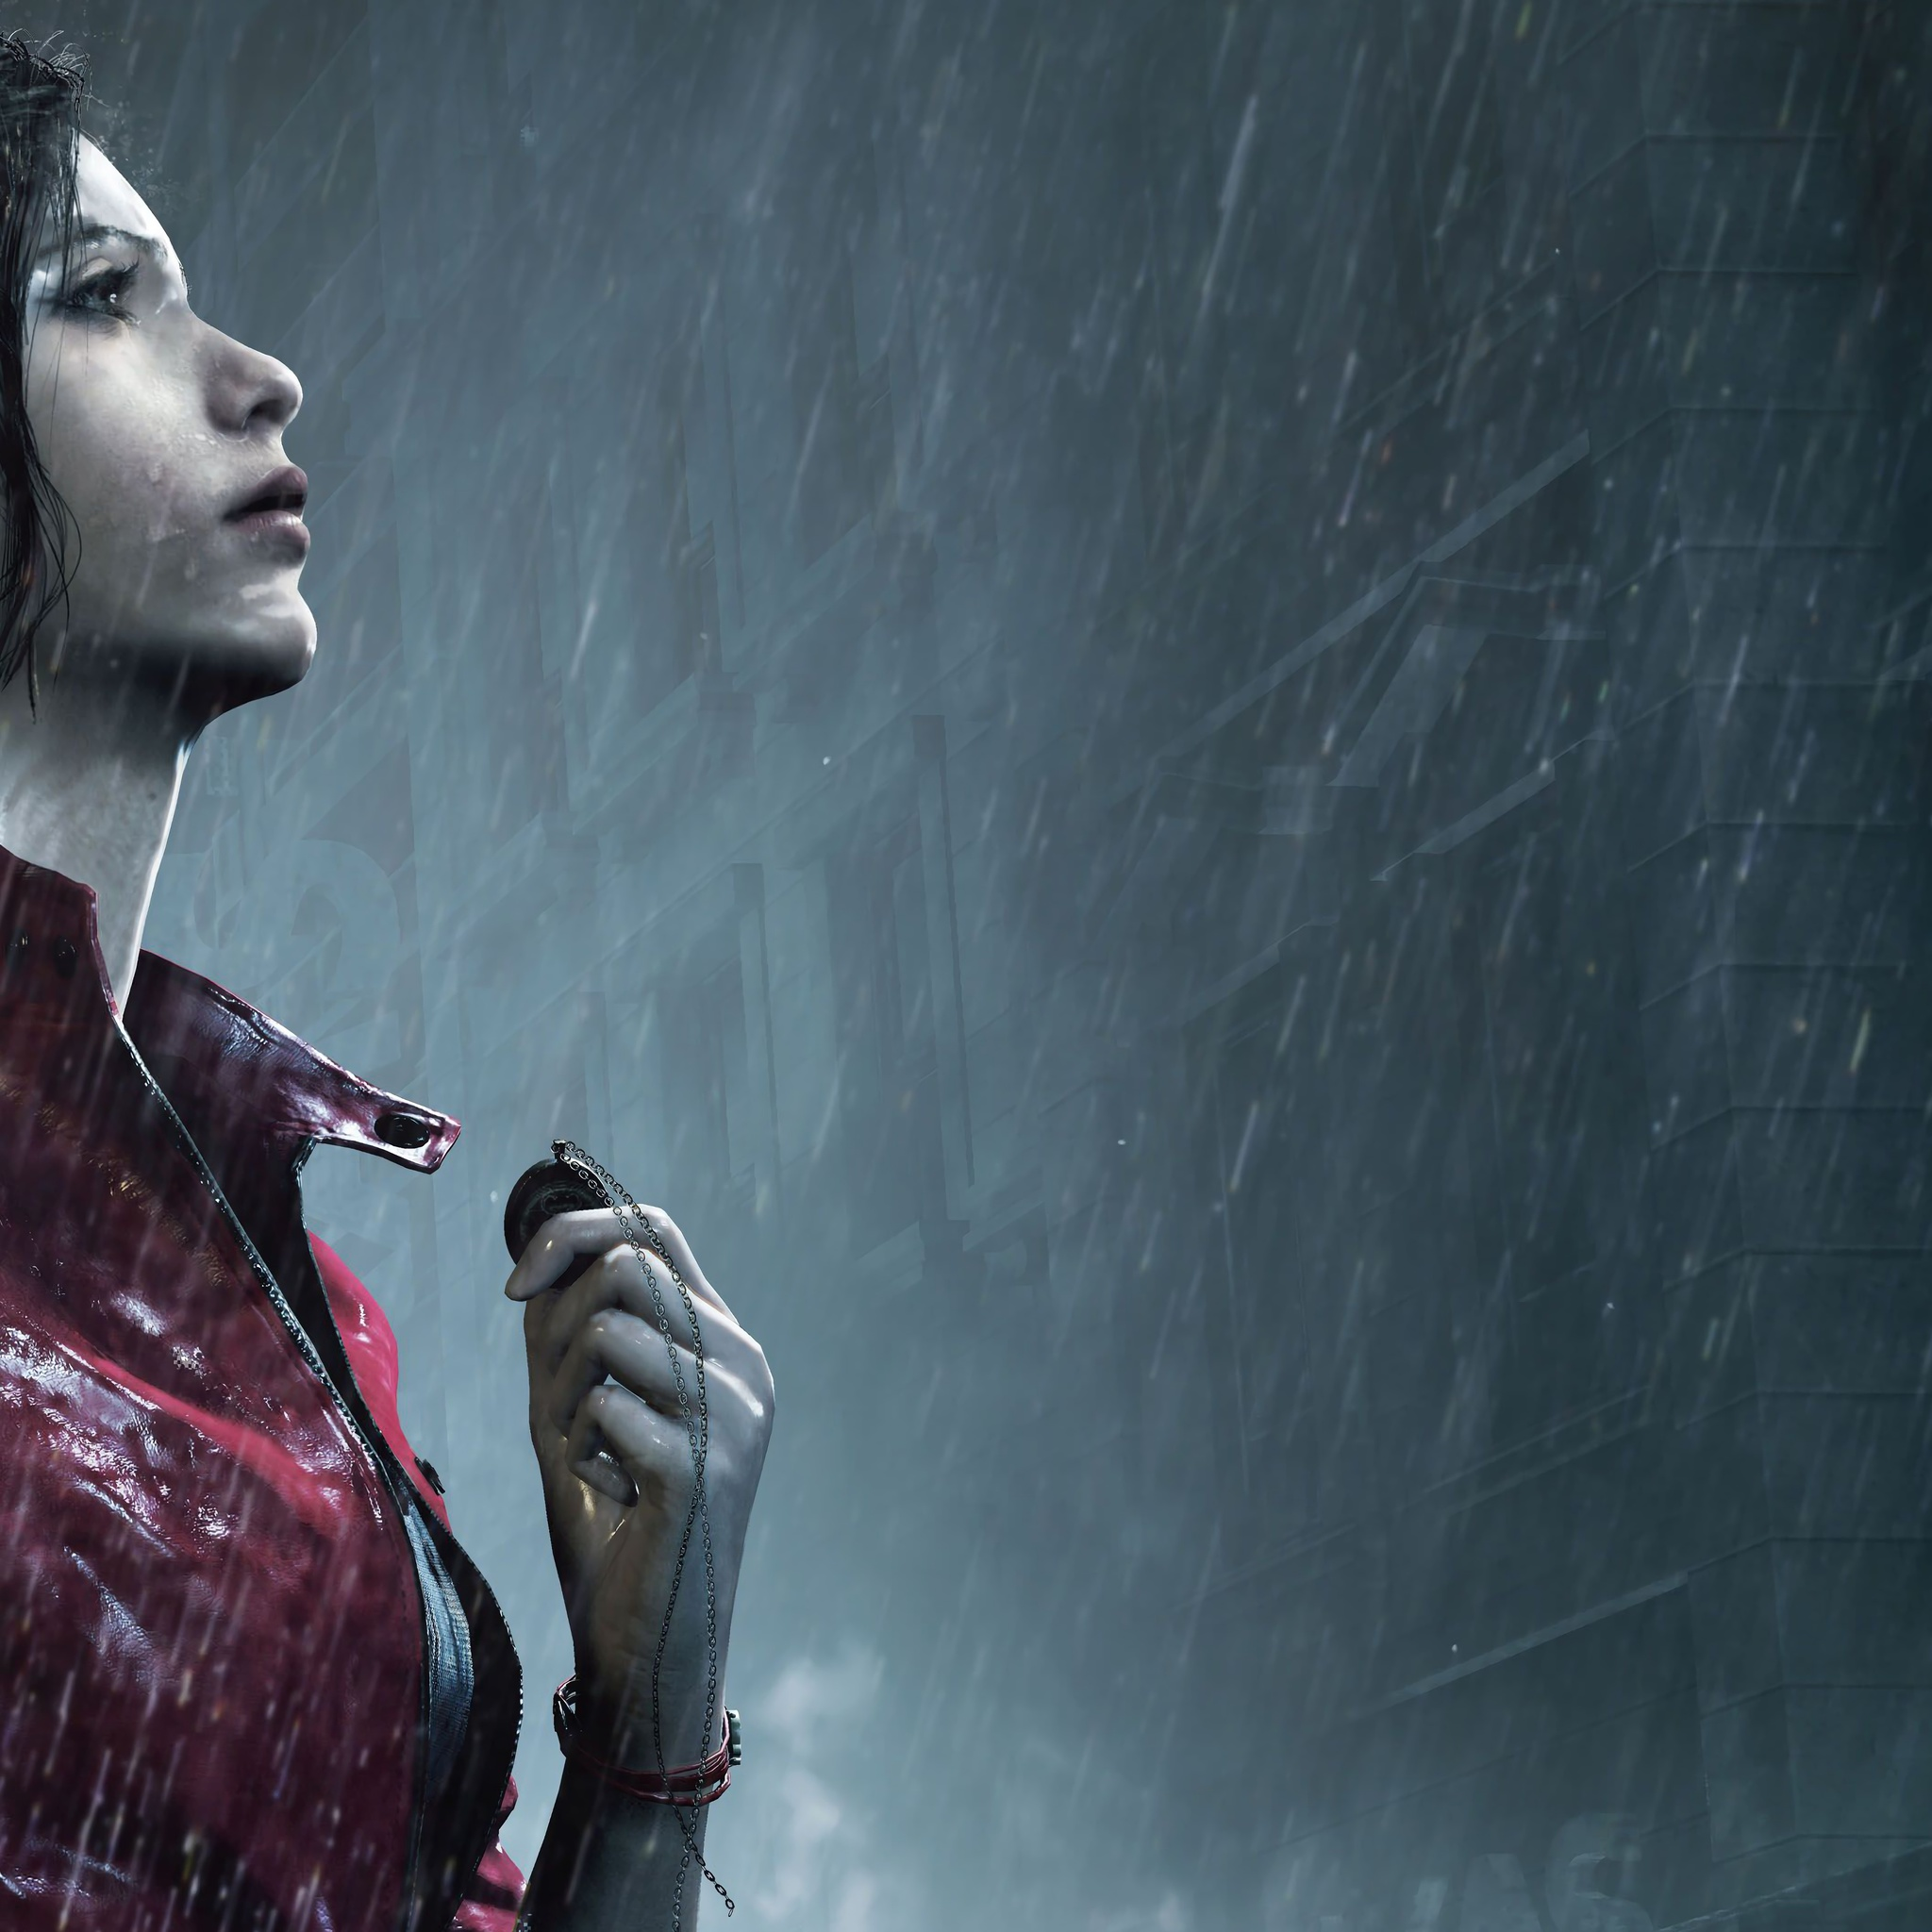 Resident Evil Hd Wallpaper: 2048x2048 Claire Redfield Resident Evil 2 8k Ipad Air HD